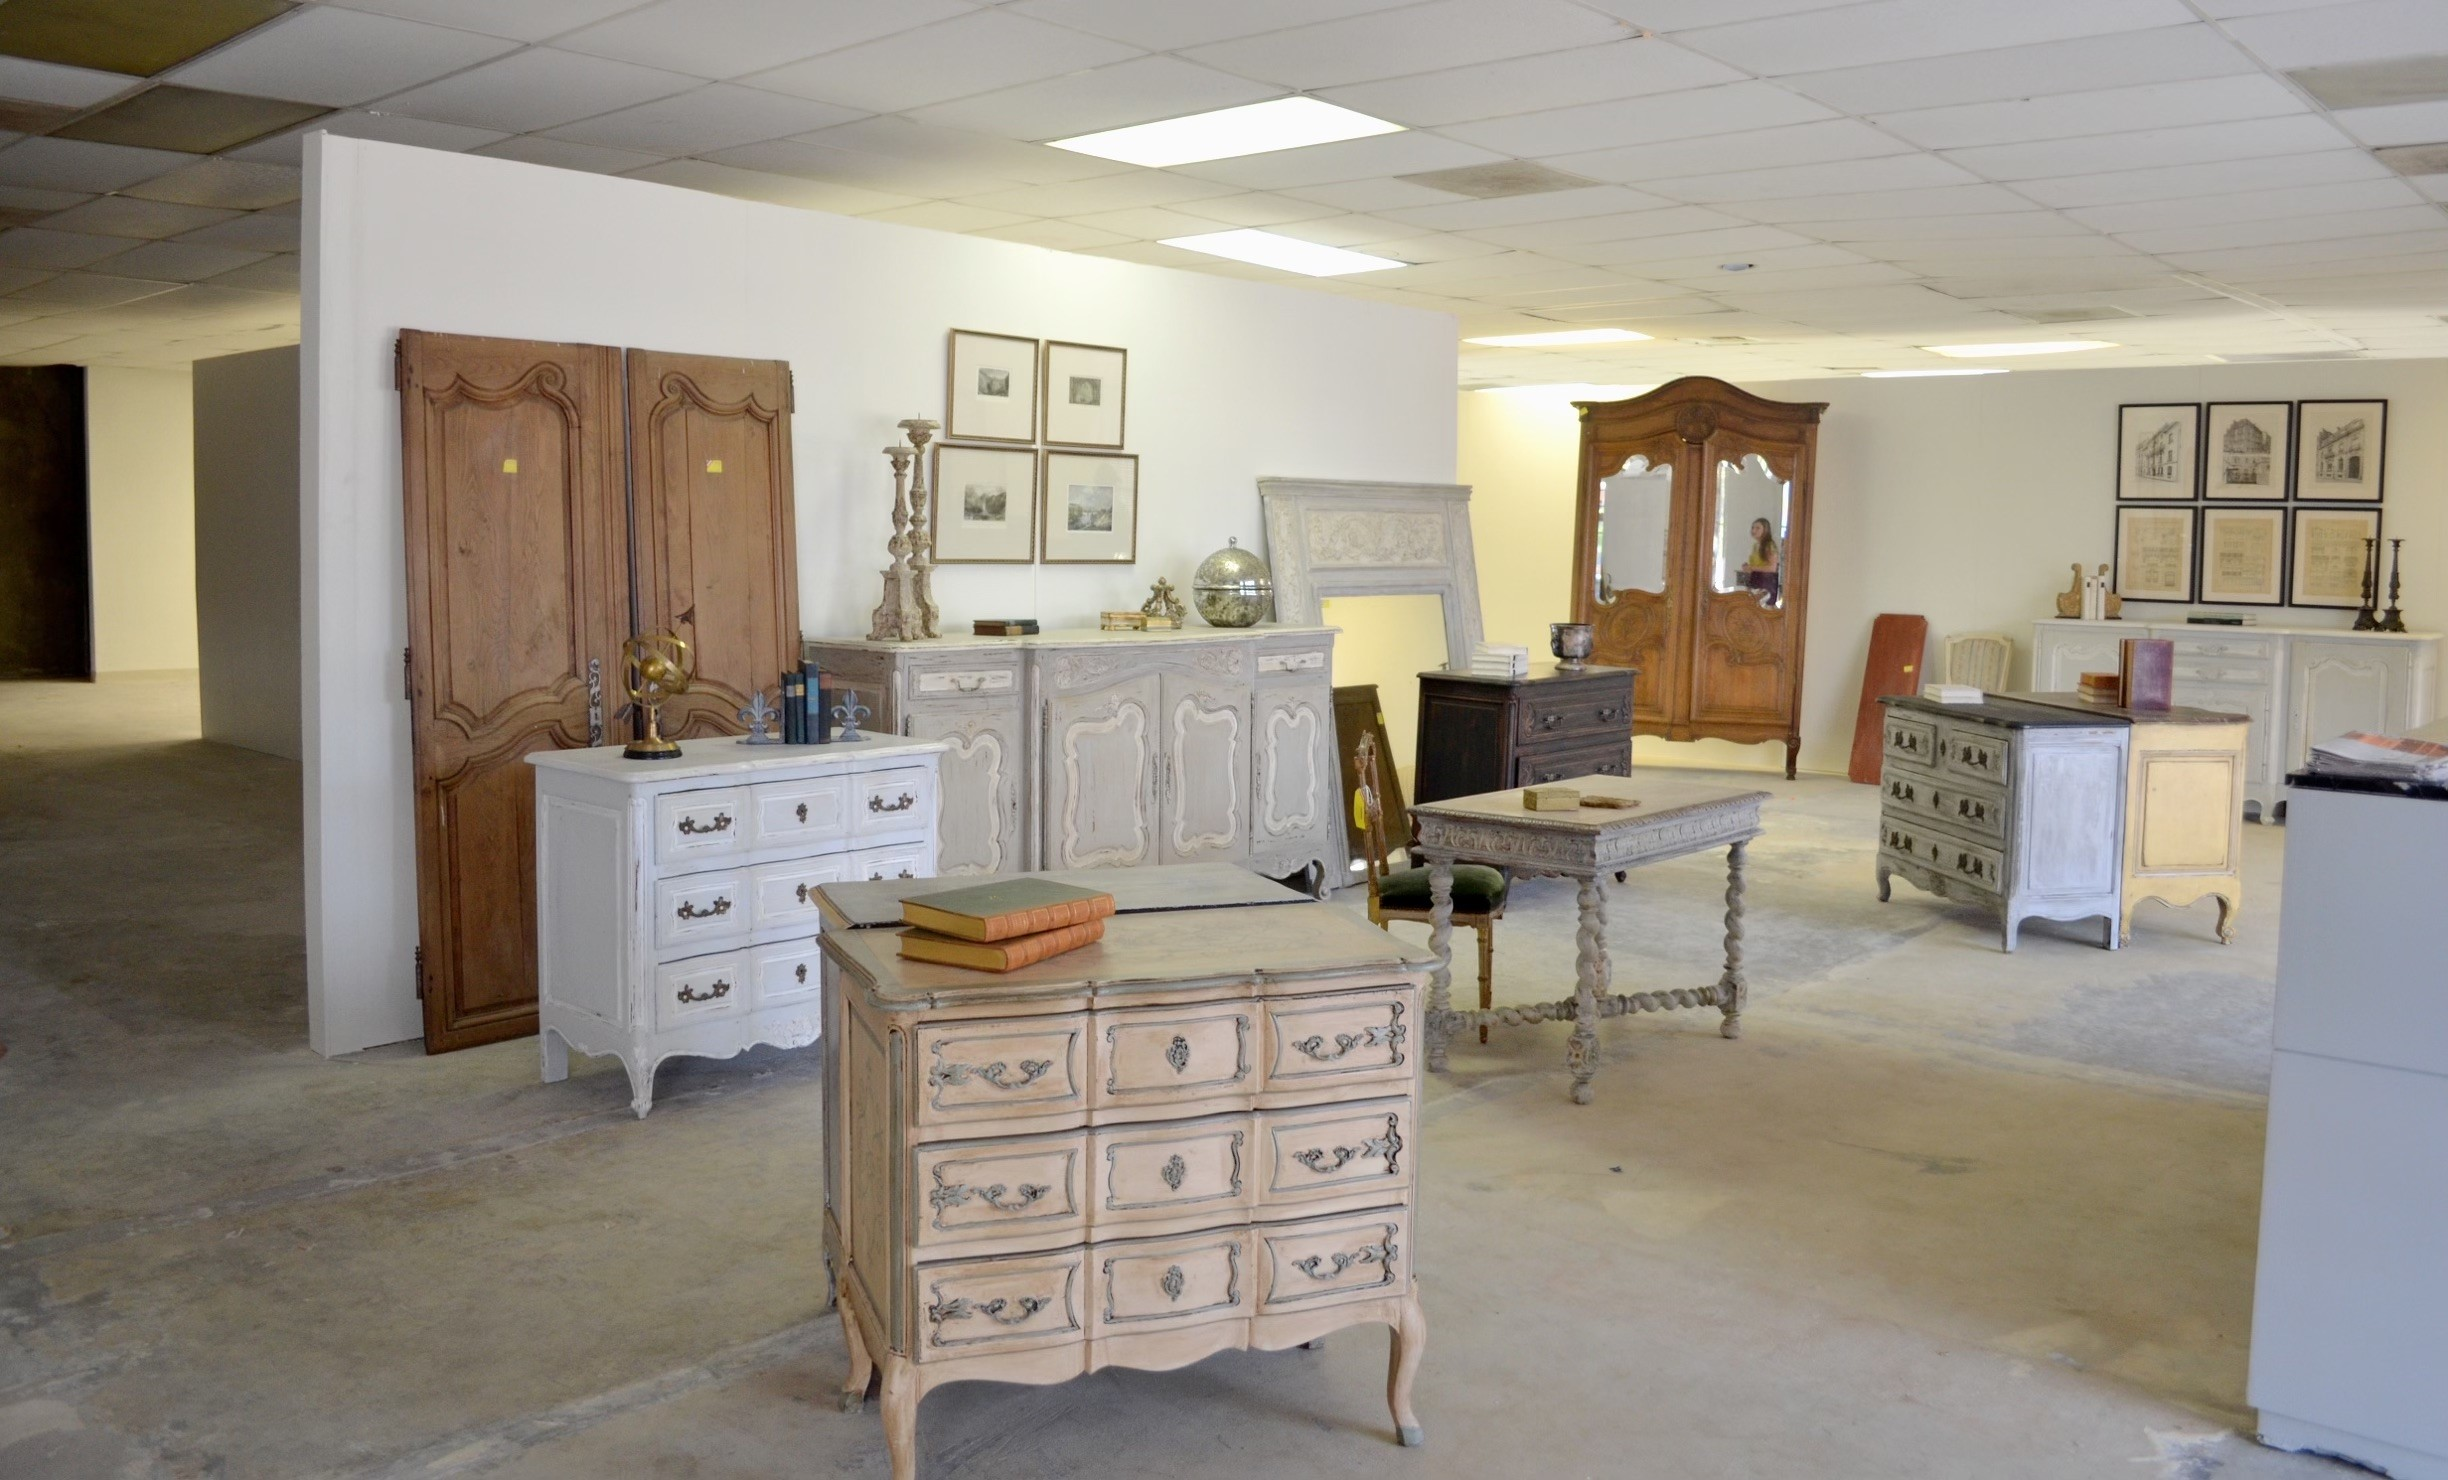 Village Antiques began with eleven pieces of furniture in an empty shop